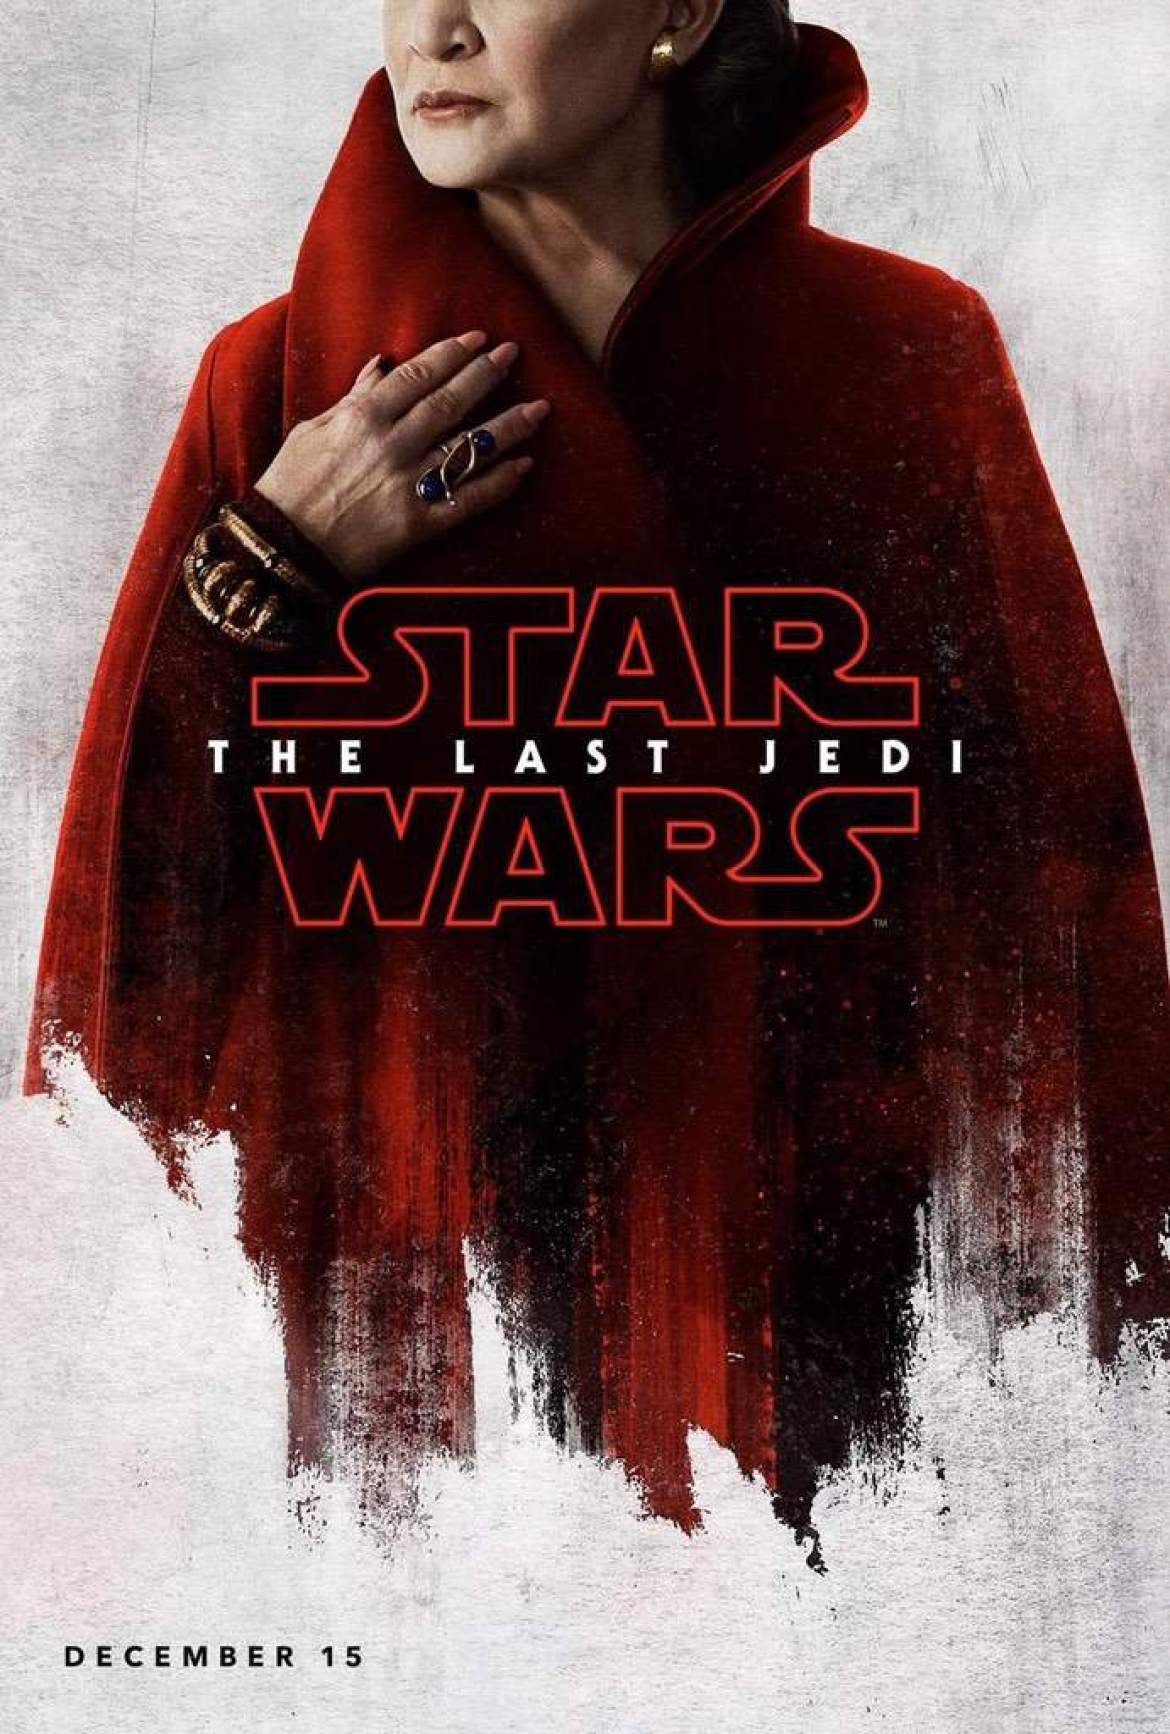 IMG 9263 - Six Star Wars: The Last Jedi character posters